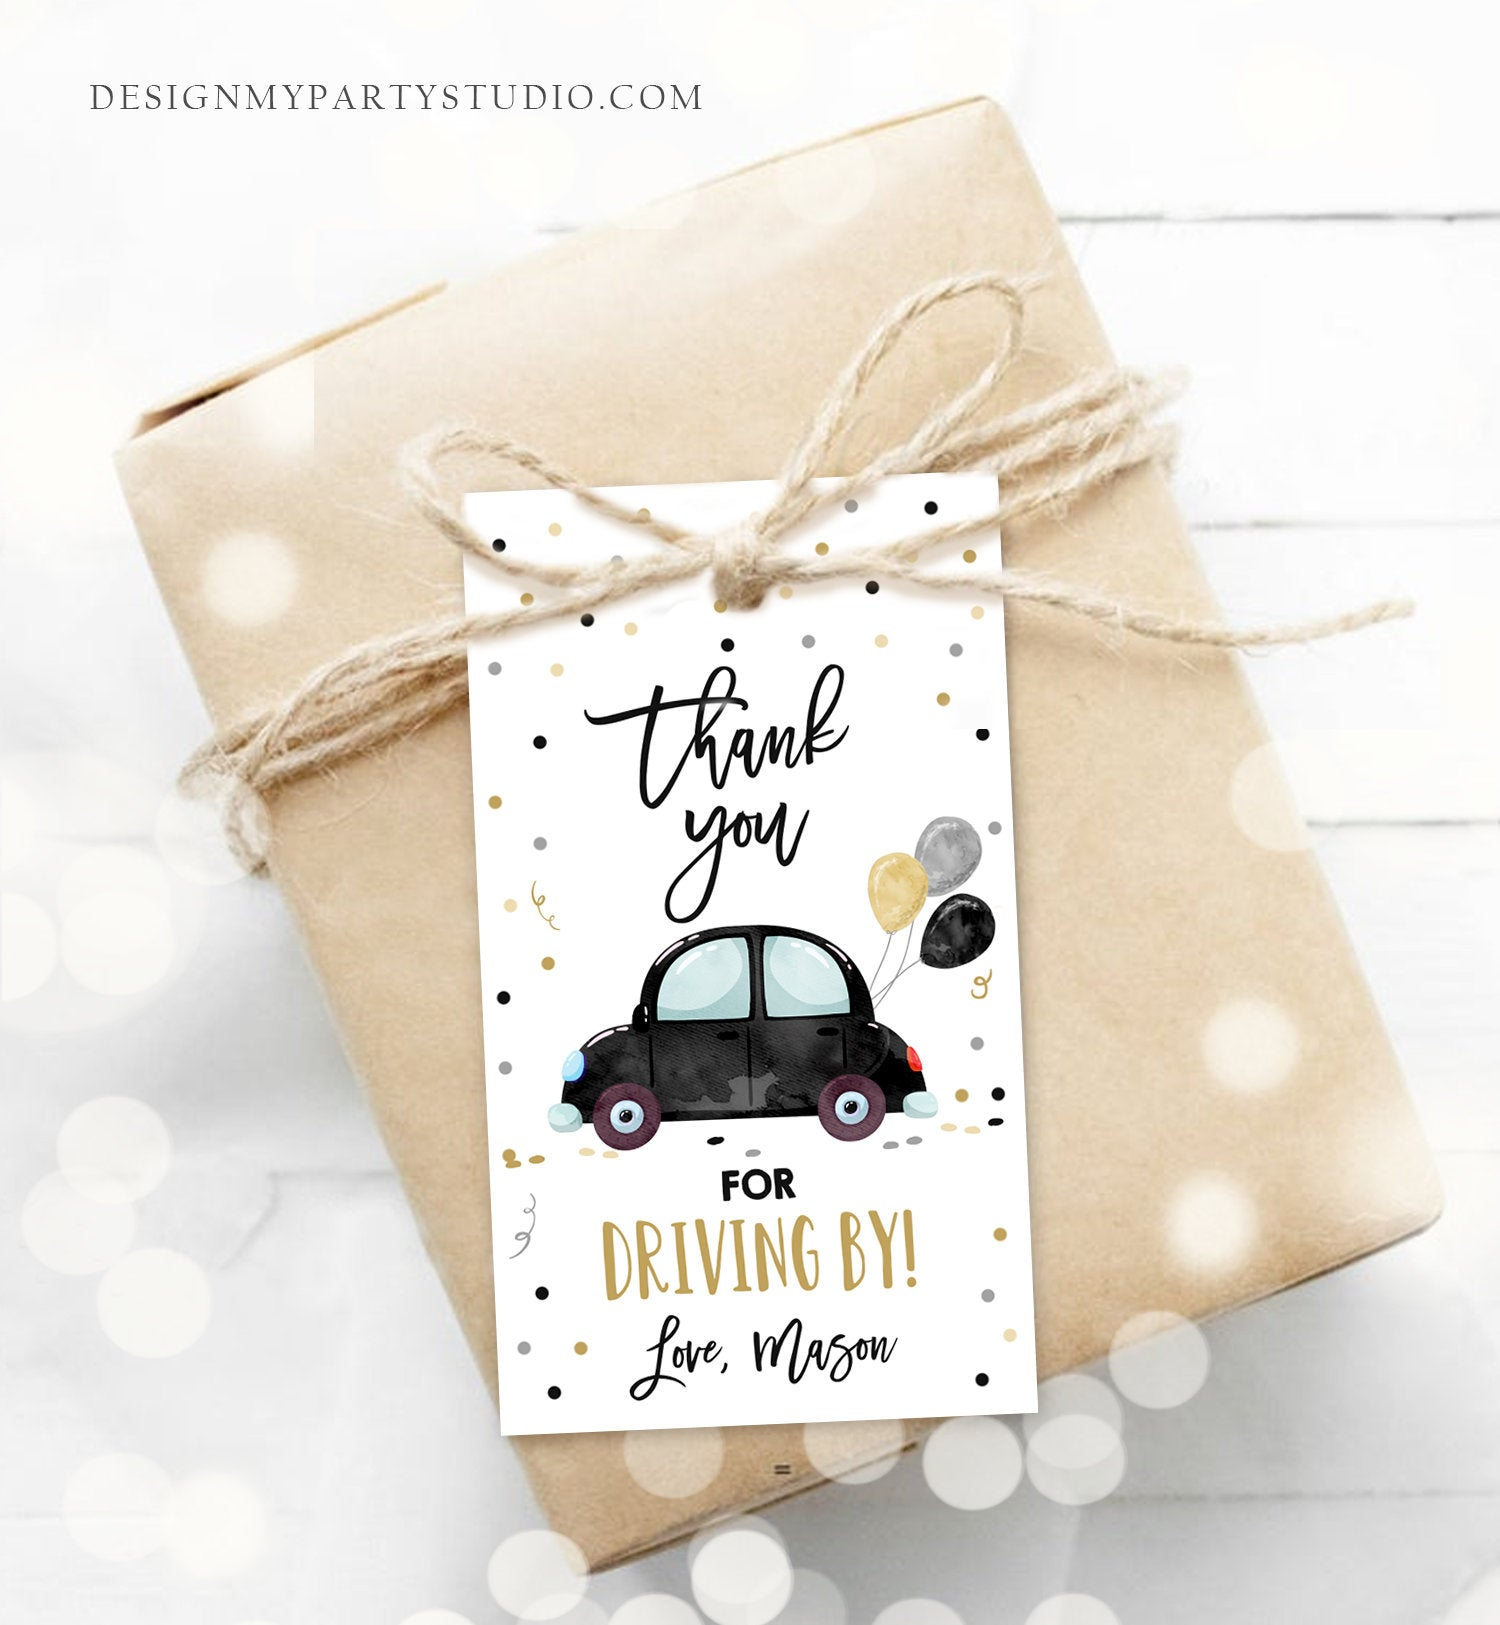 Editable Drive By Favor Tag Birthday Parade Drive Through Favors Party Thank You Gift Quarantine Black Car Corjl Template Printable 0333